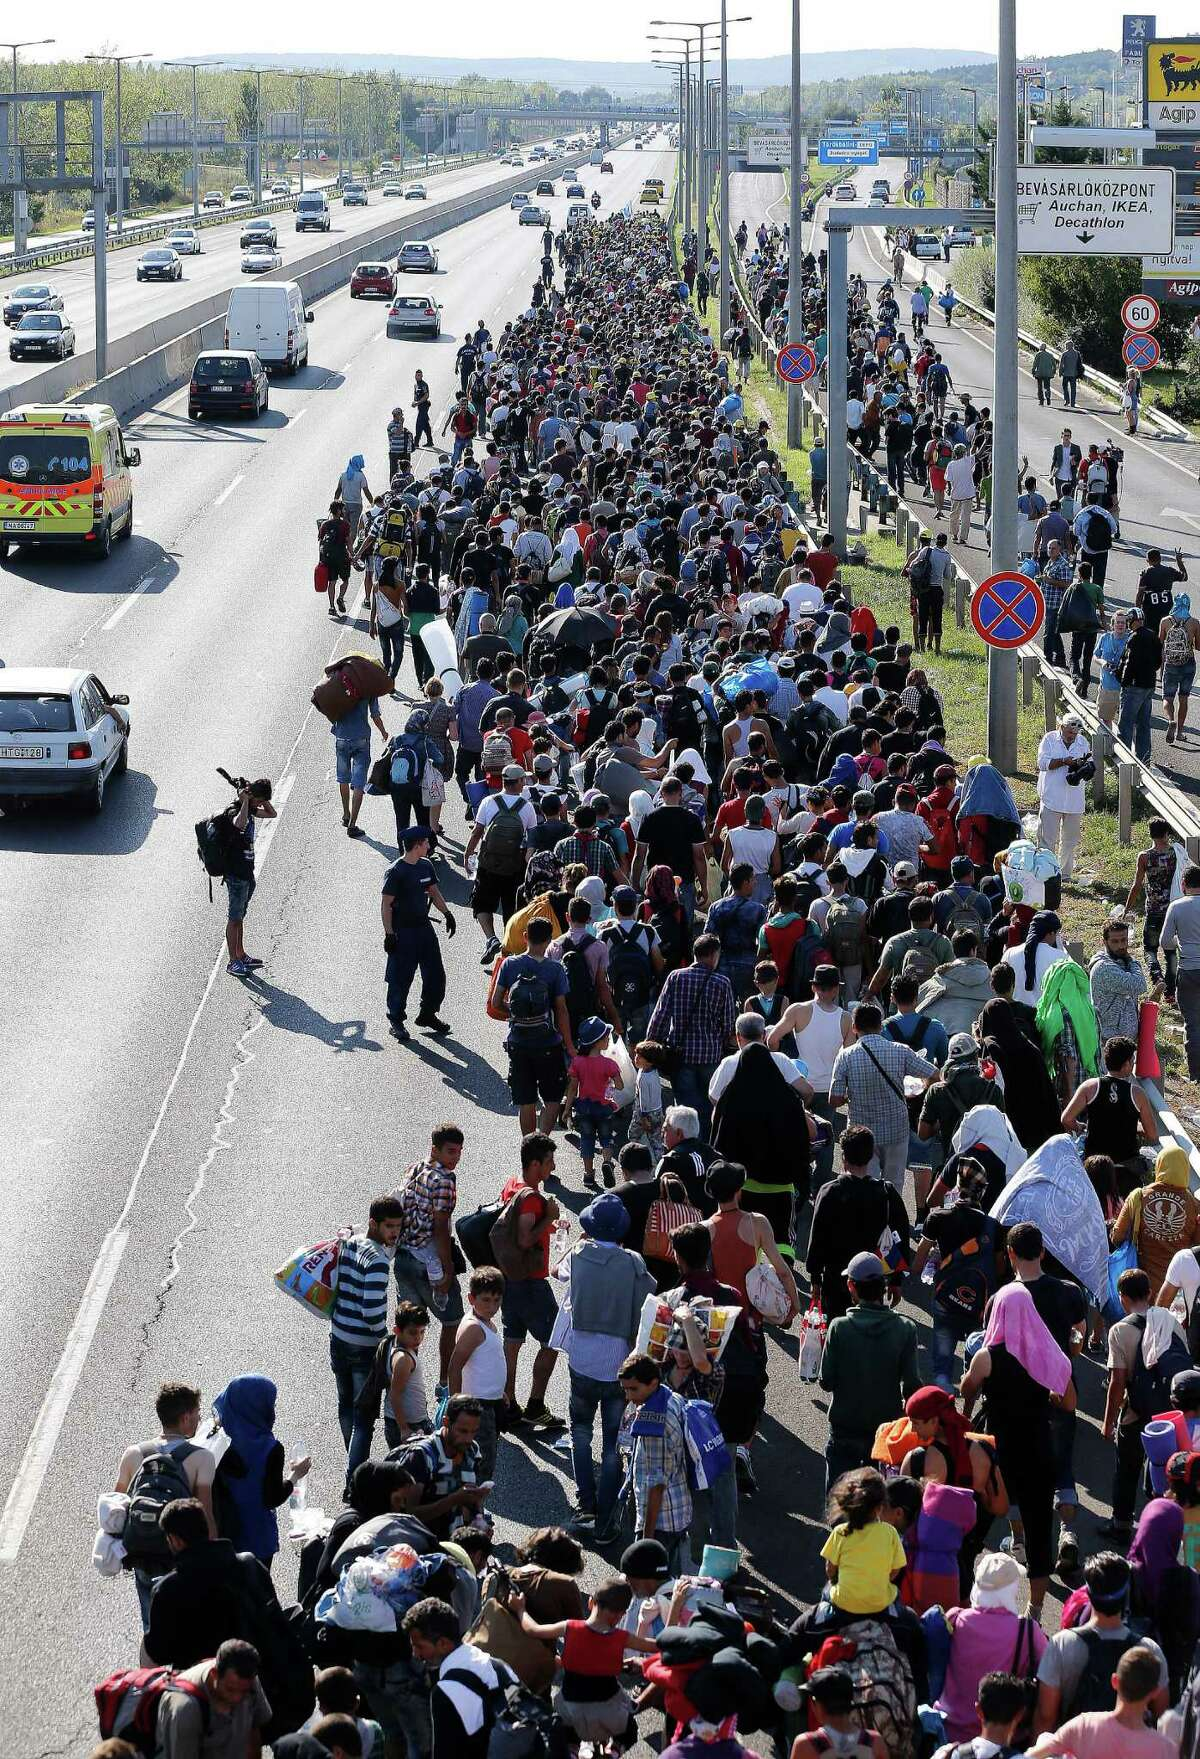 Migrants walk out of Budapest, Hungary, Friday, Sept. 4, 2015. Over 150,000 people seeking to enter Europe have reached Hungary this year, most coming through the southern border with Serbia, and many apply for asylum but quickly try to leave for richer EU countries. (AP Photo/Frank Augstein) ORG XMIT: FAS132